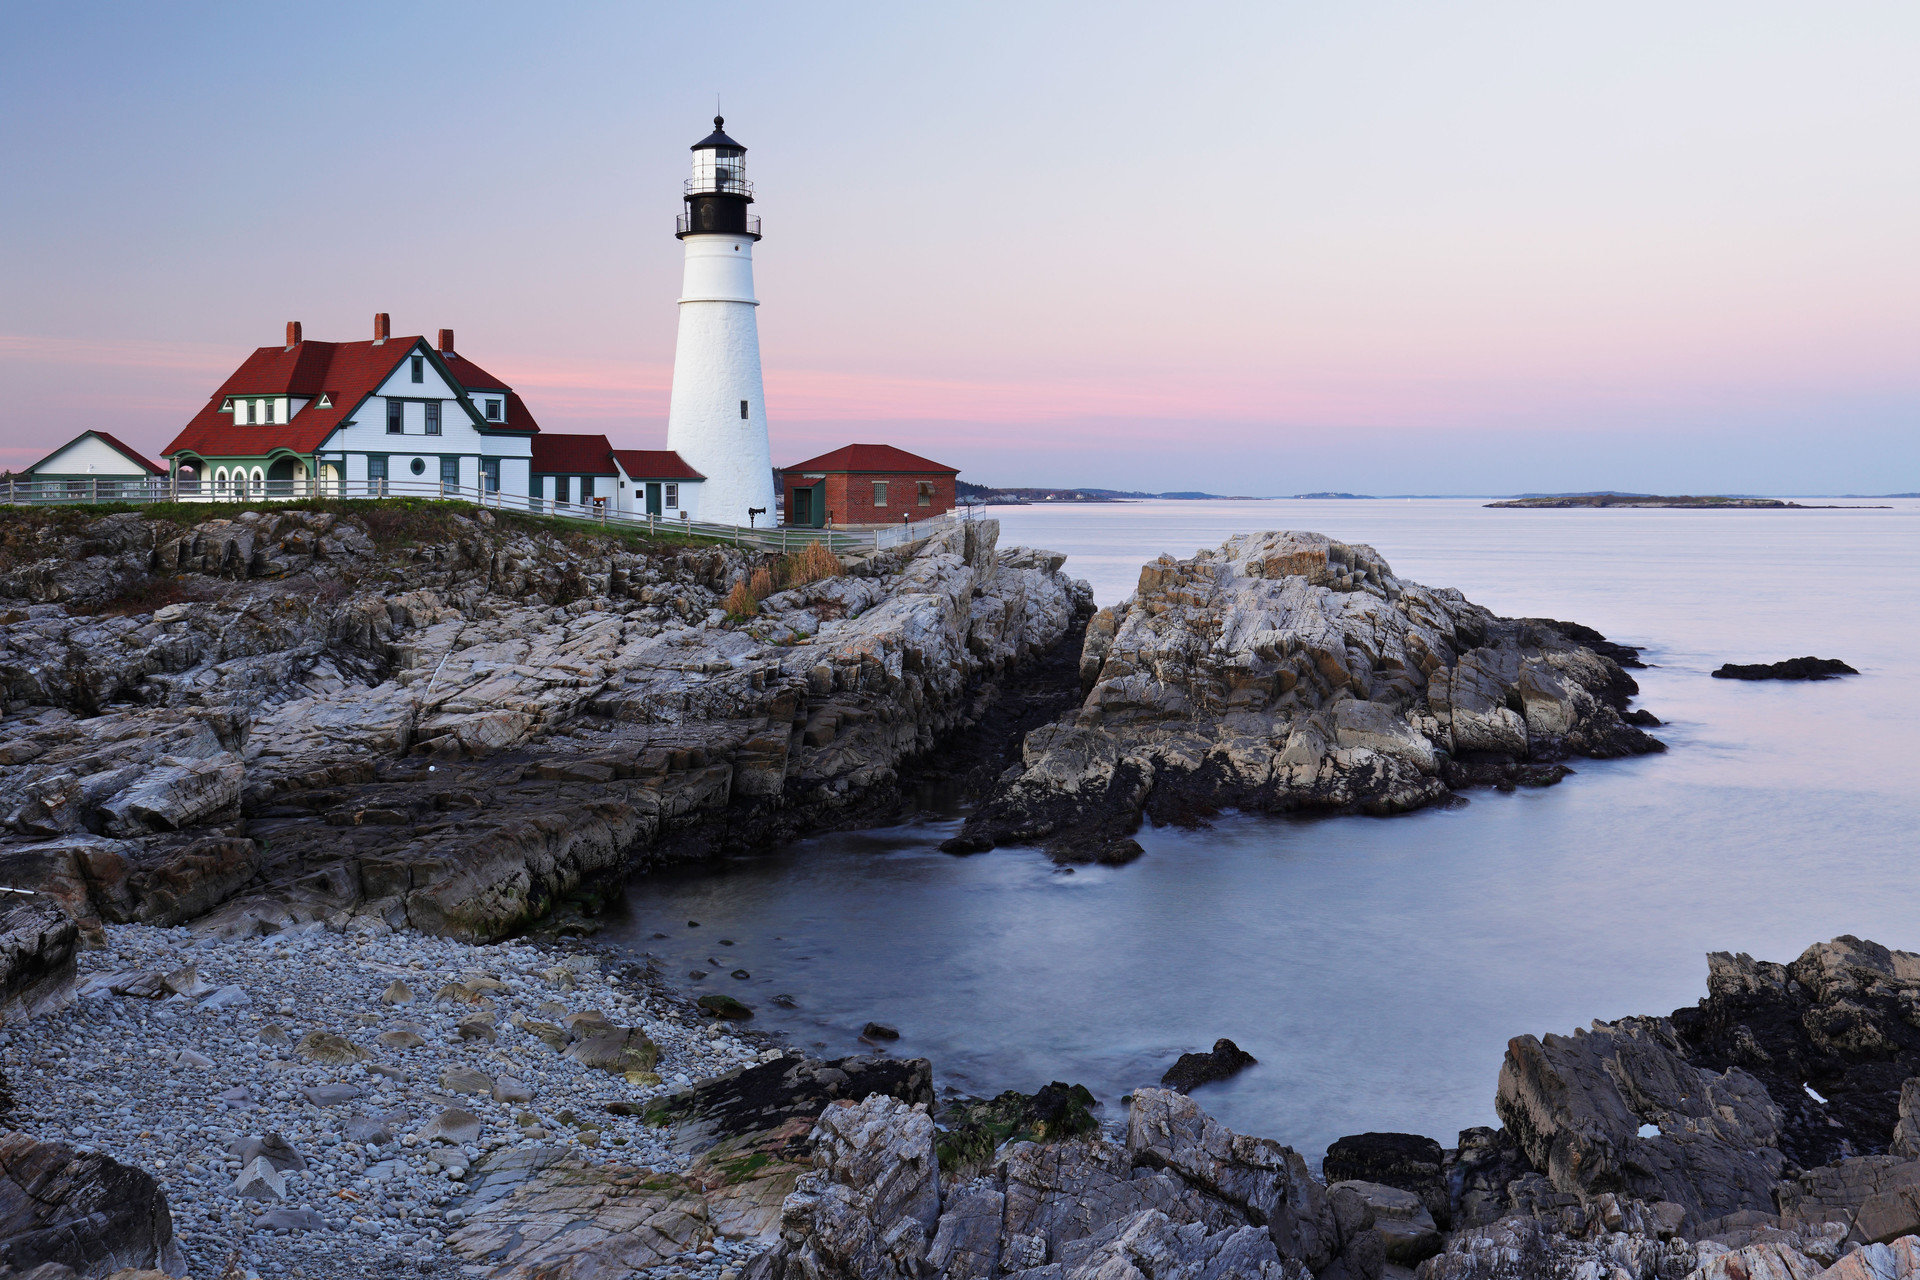 Trip Ideas outdoor sky water rock lighthouse tower Sea Coast shore rocky Ocean house Nature cove cape bay Beach promontory Island